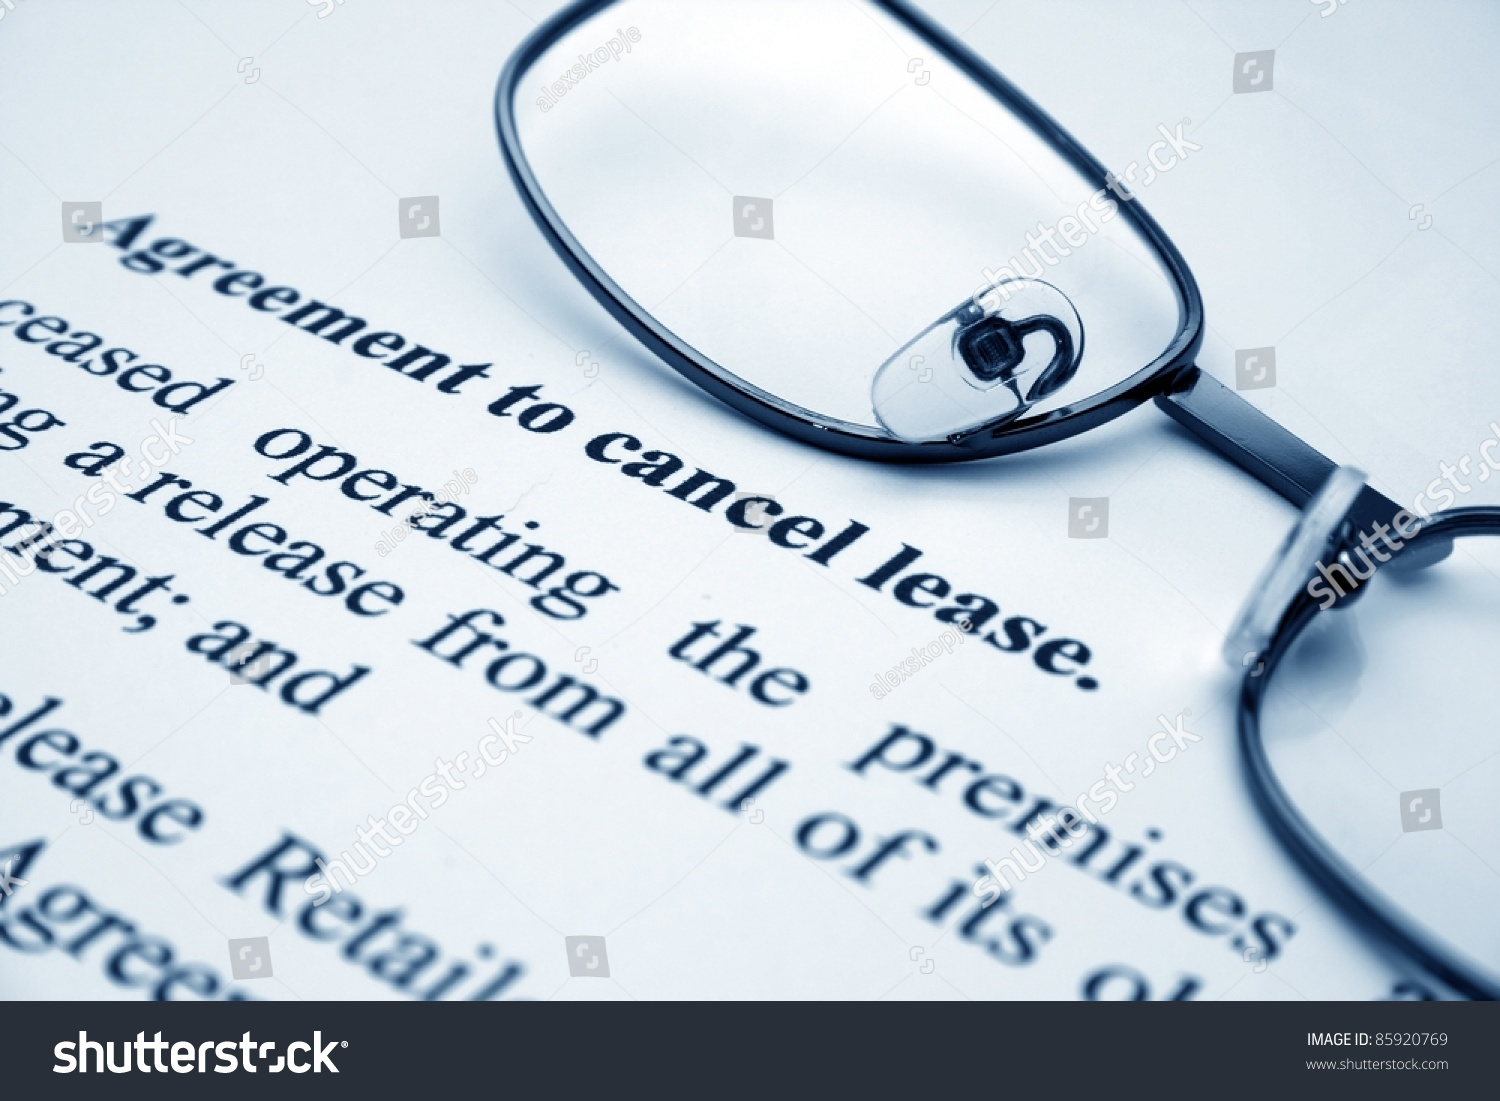 Agreement Cancel Lease Stock Photo Edit Now 85920769 Shutterstock